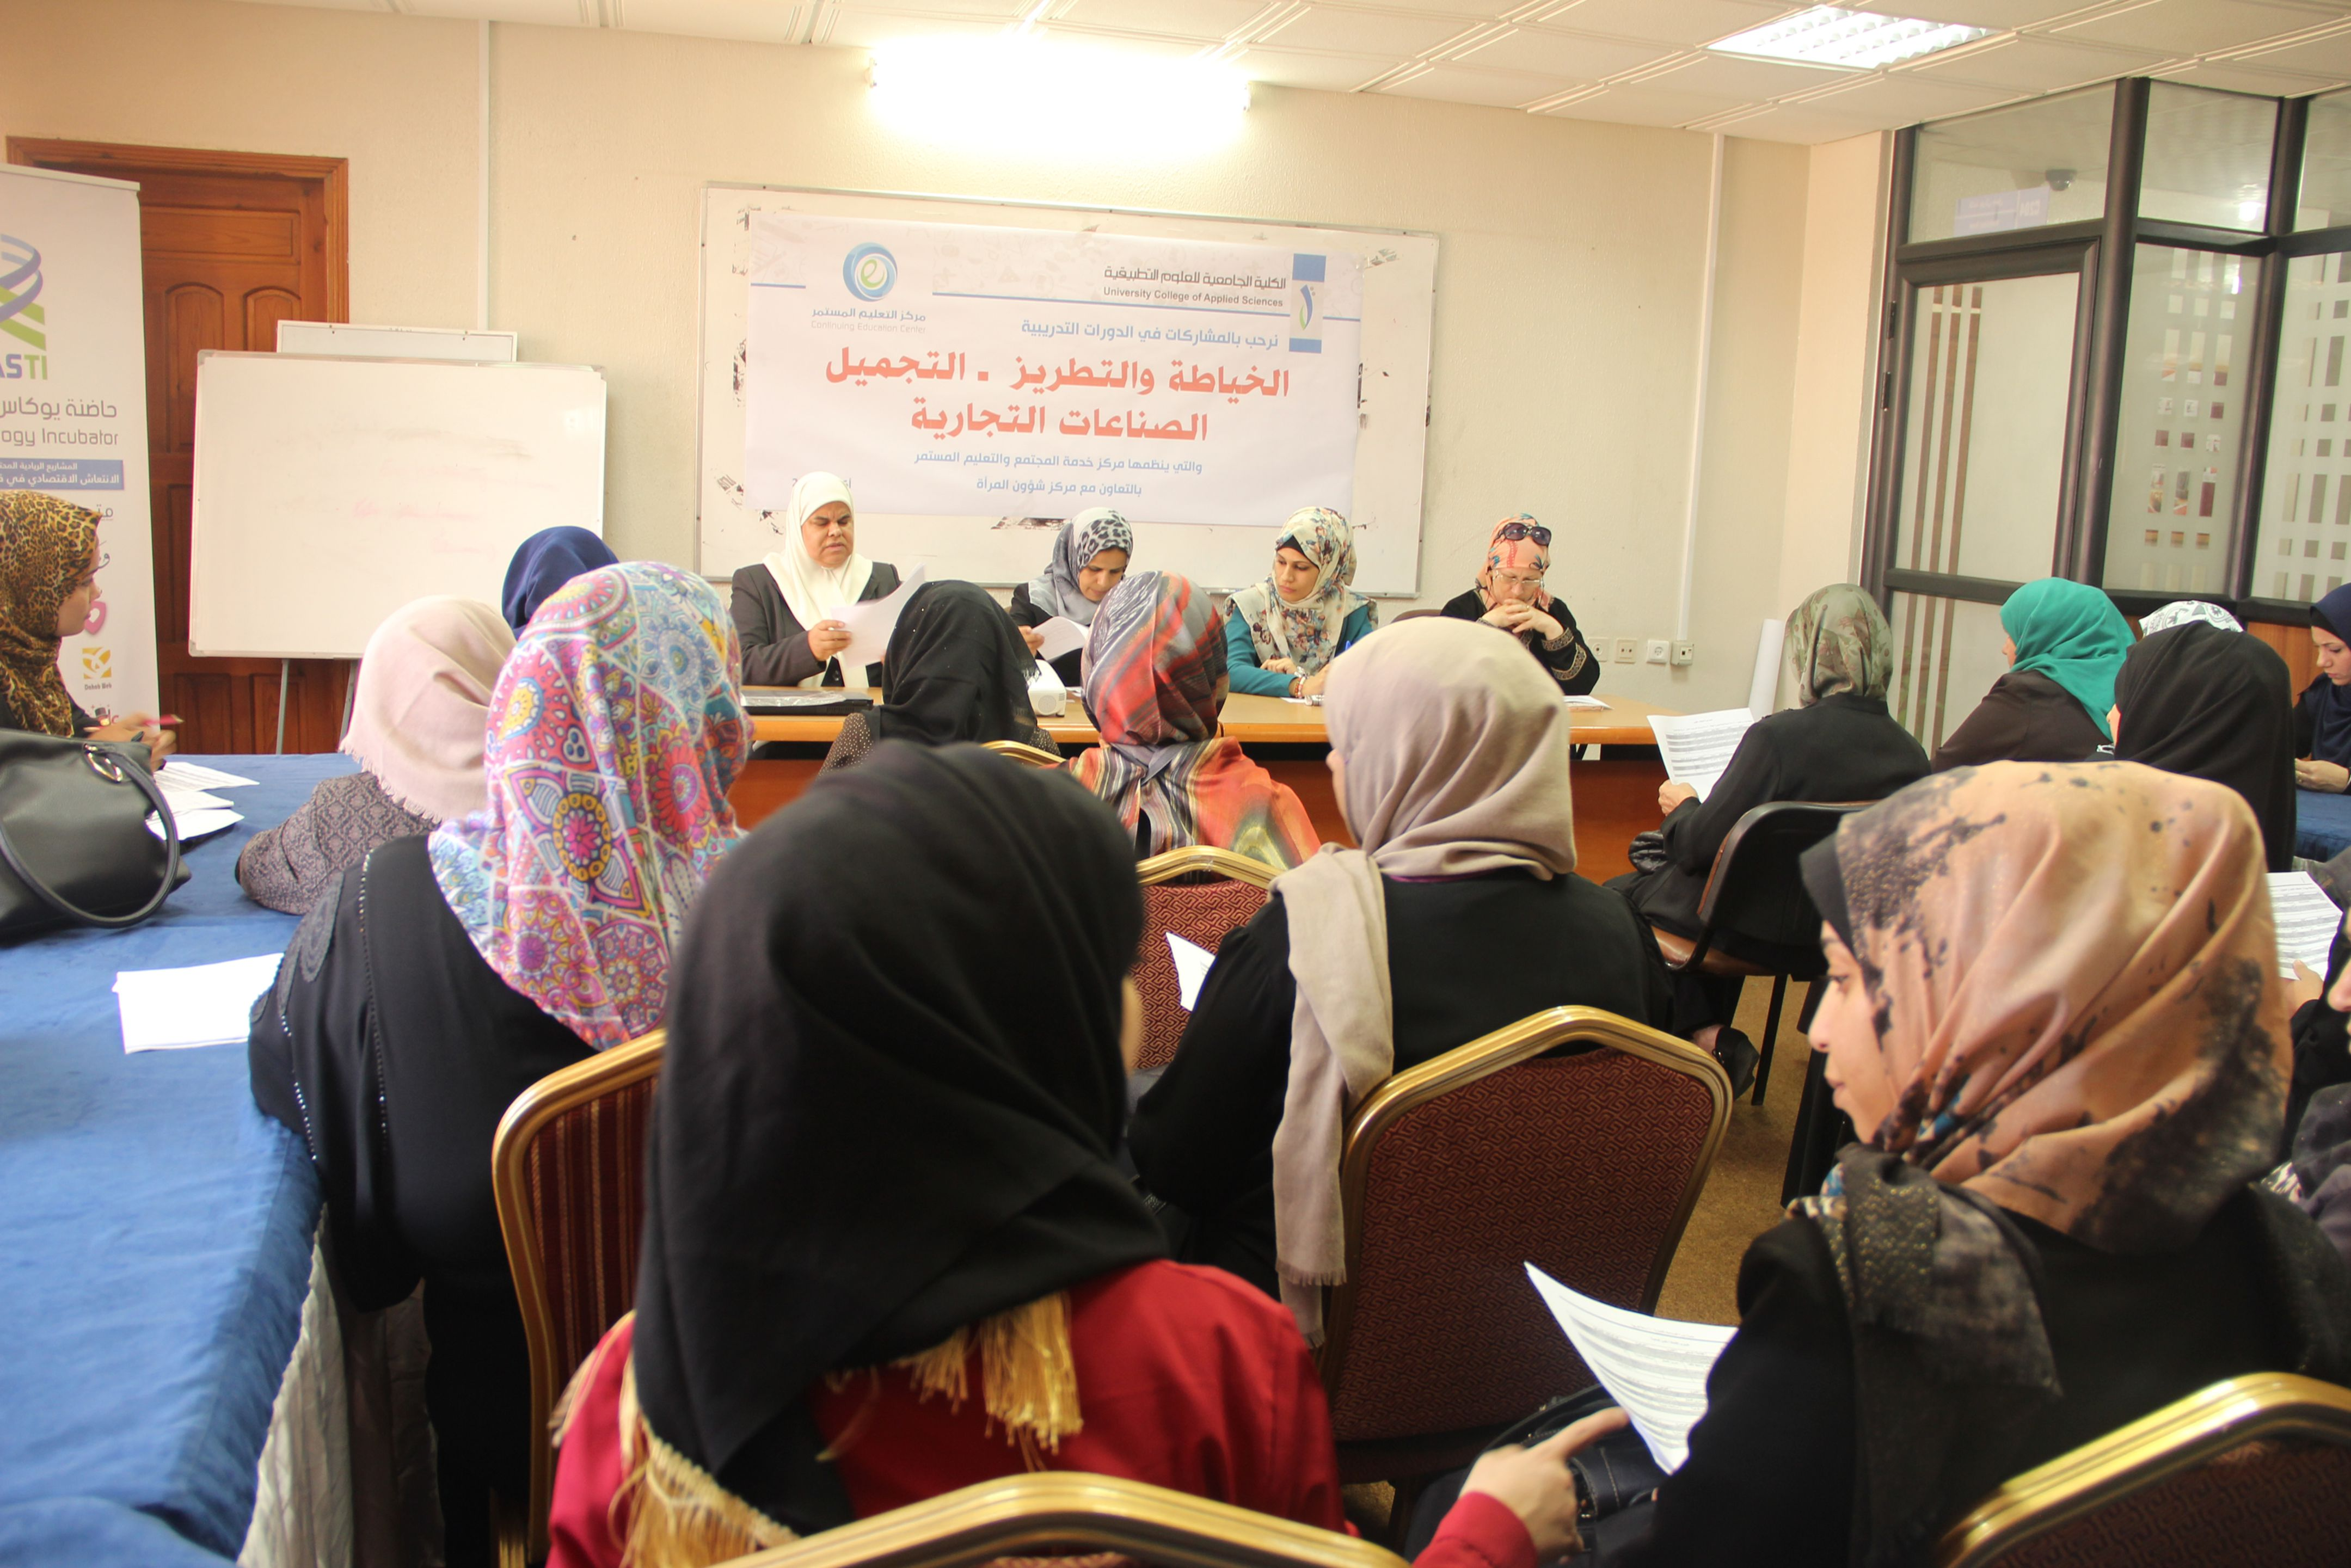 UCAS has signed an agreement with Women's Affairs Center to train women cadres. The signing ceremony took place in the presence of Mona Abu Jad, A representative of the University College, Amal Siam, WAC Director and a number of students and officials.